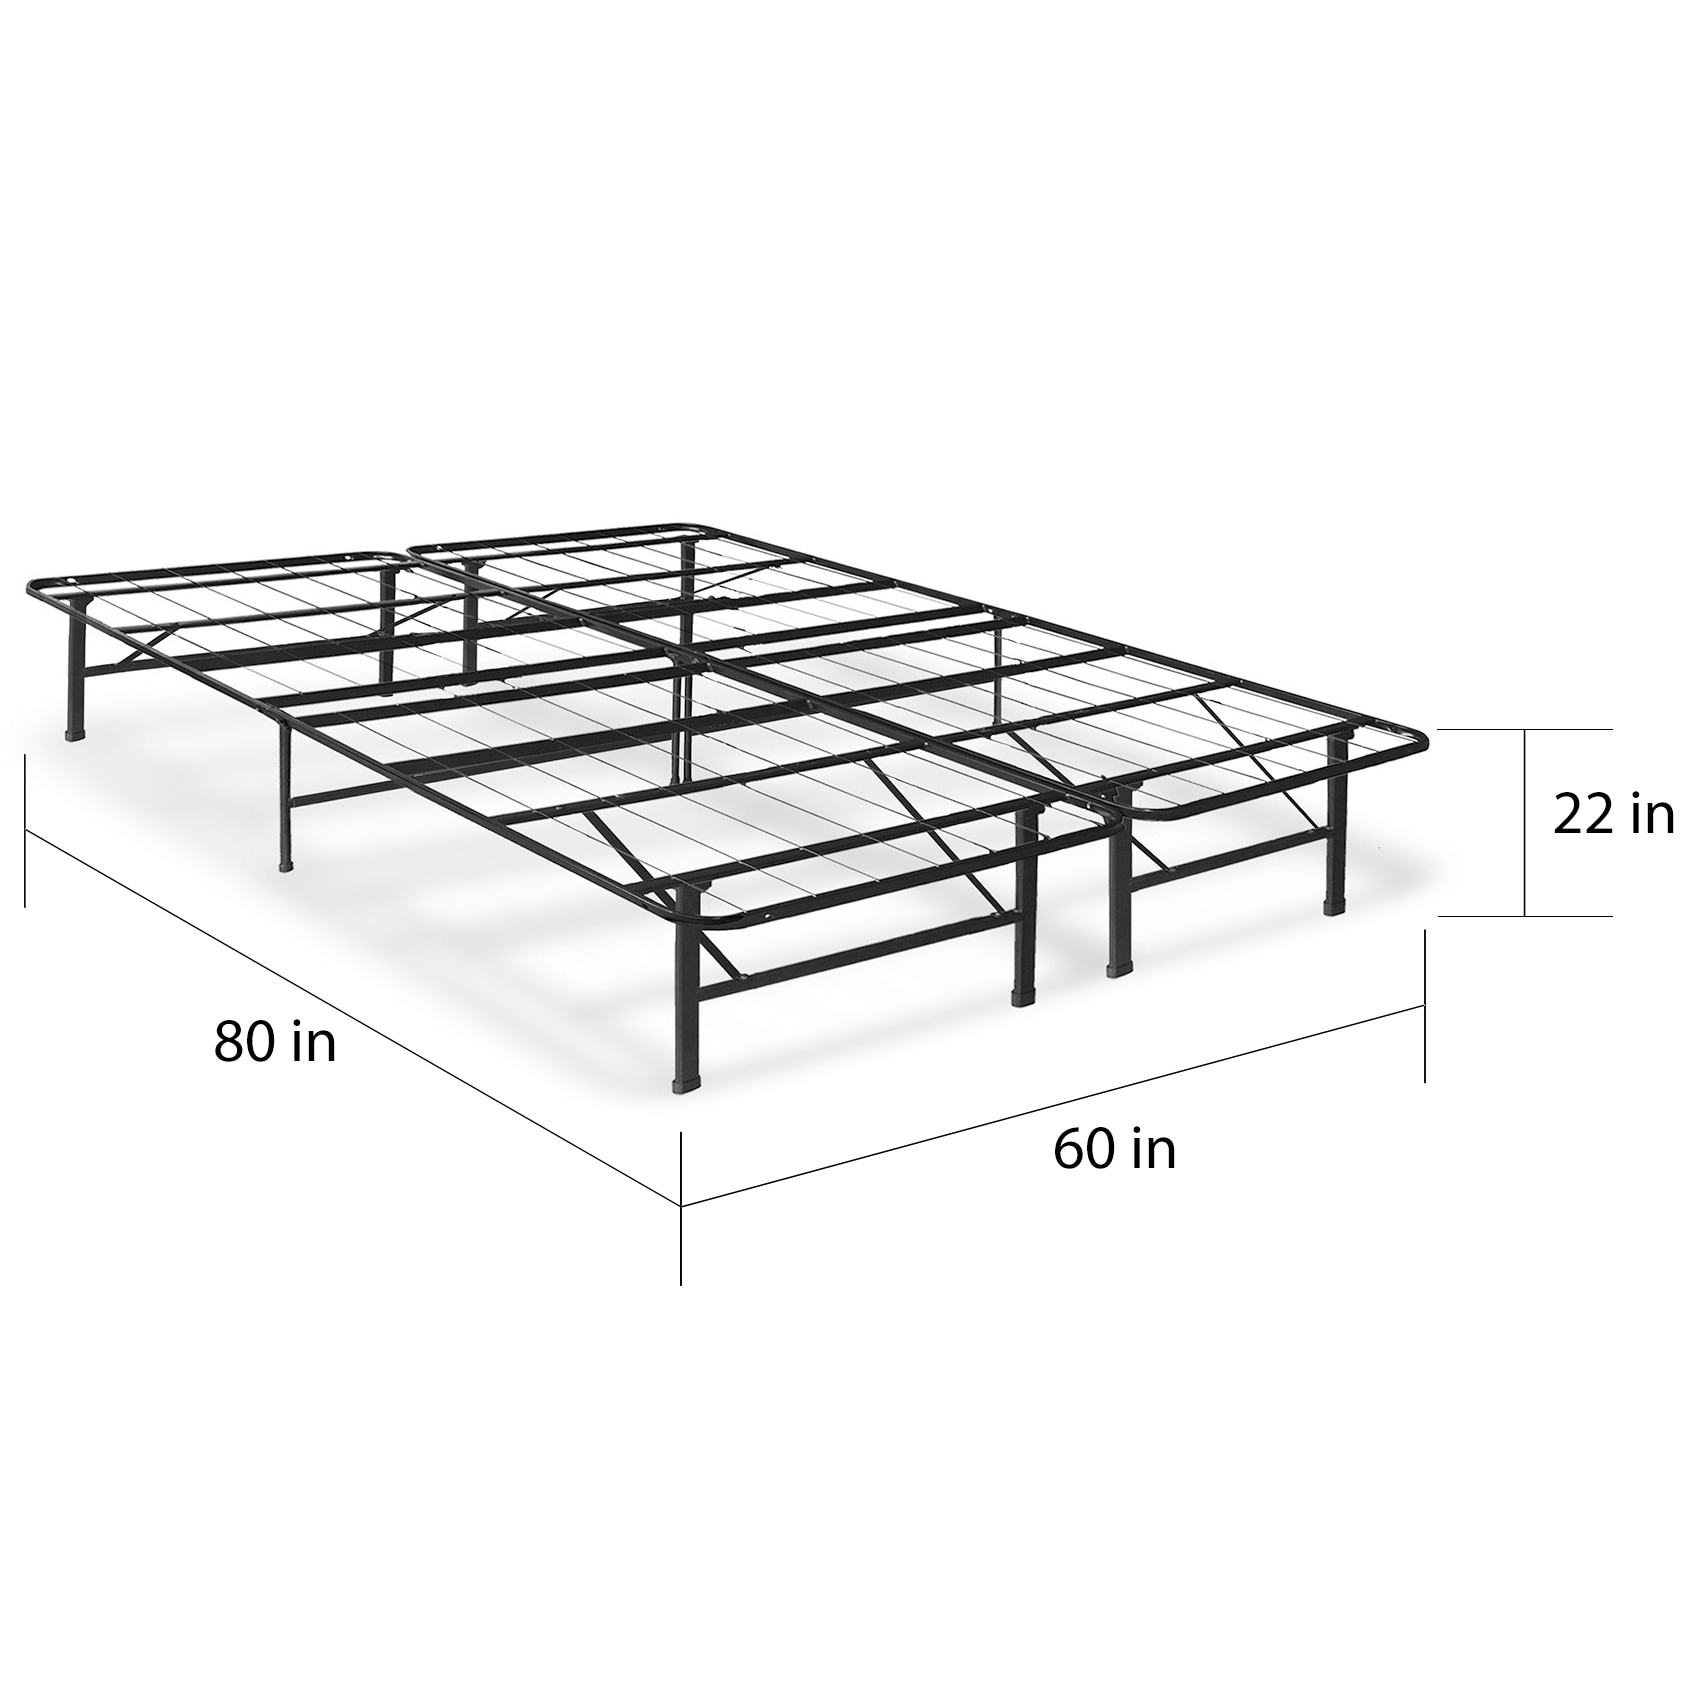 712de20083b2 Shop Crown Comfort 8-inch Memory Foam Mattress with Bed Frame Set - Free  Shipping Today - Overstock - 12027636